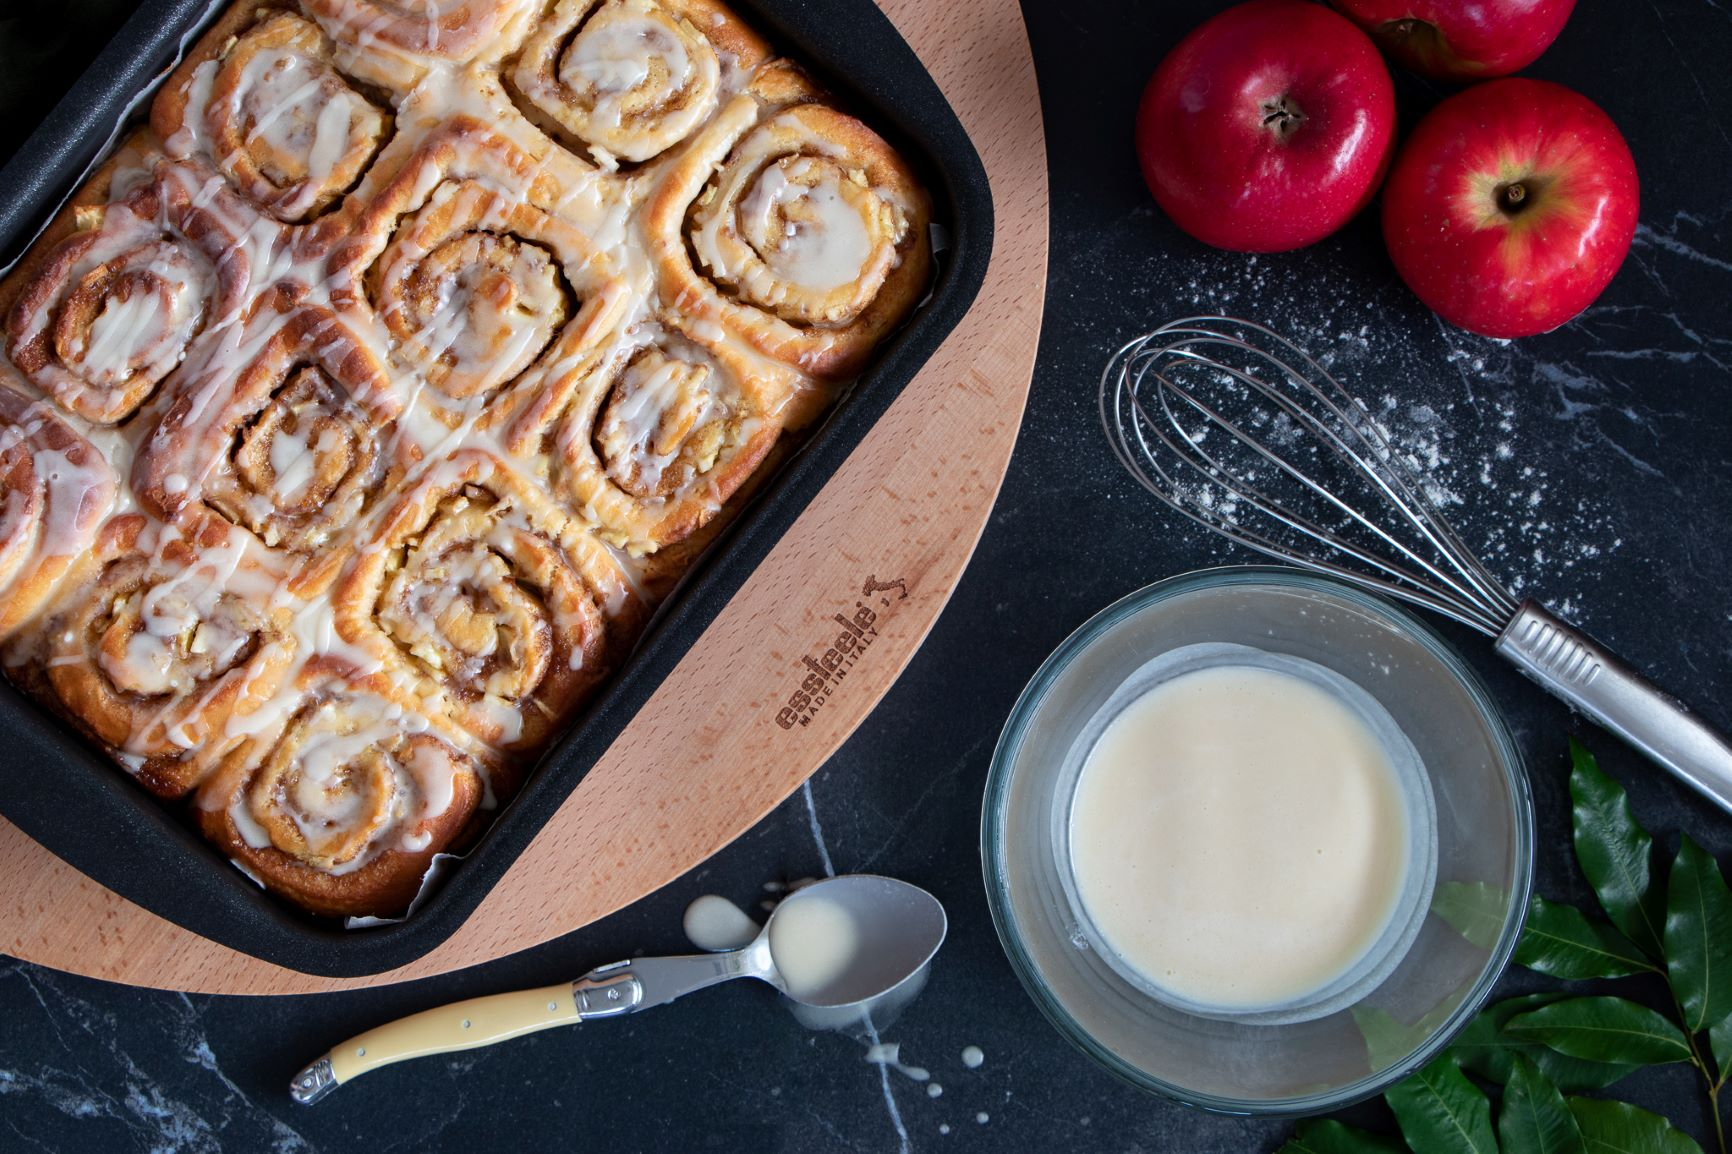 Apple, Maple Syrup Cinnamon Scrolls